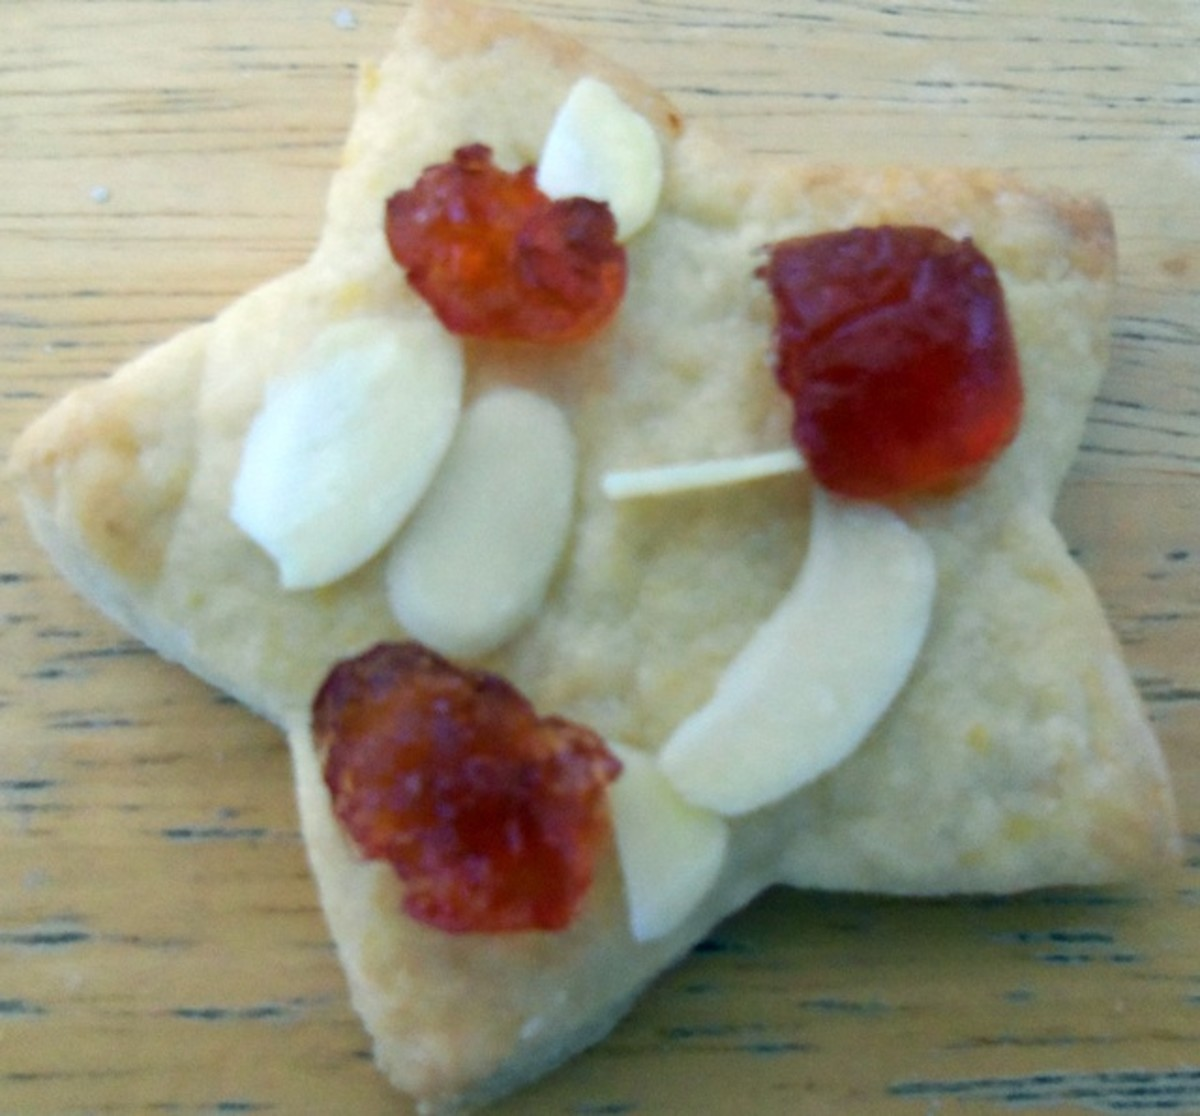 You can decorate the cookies simply with glacé cherries and flaked almonds.